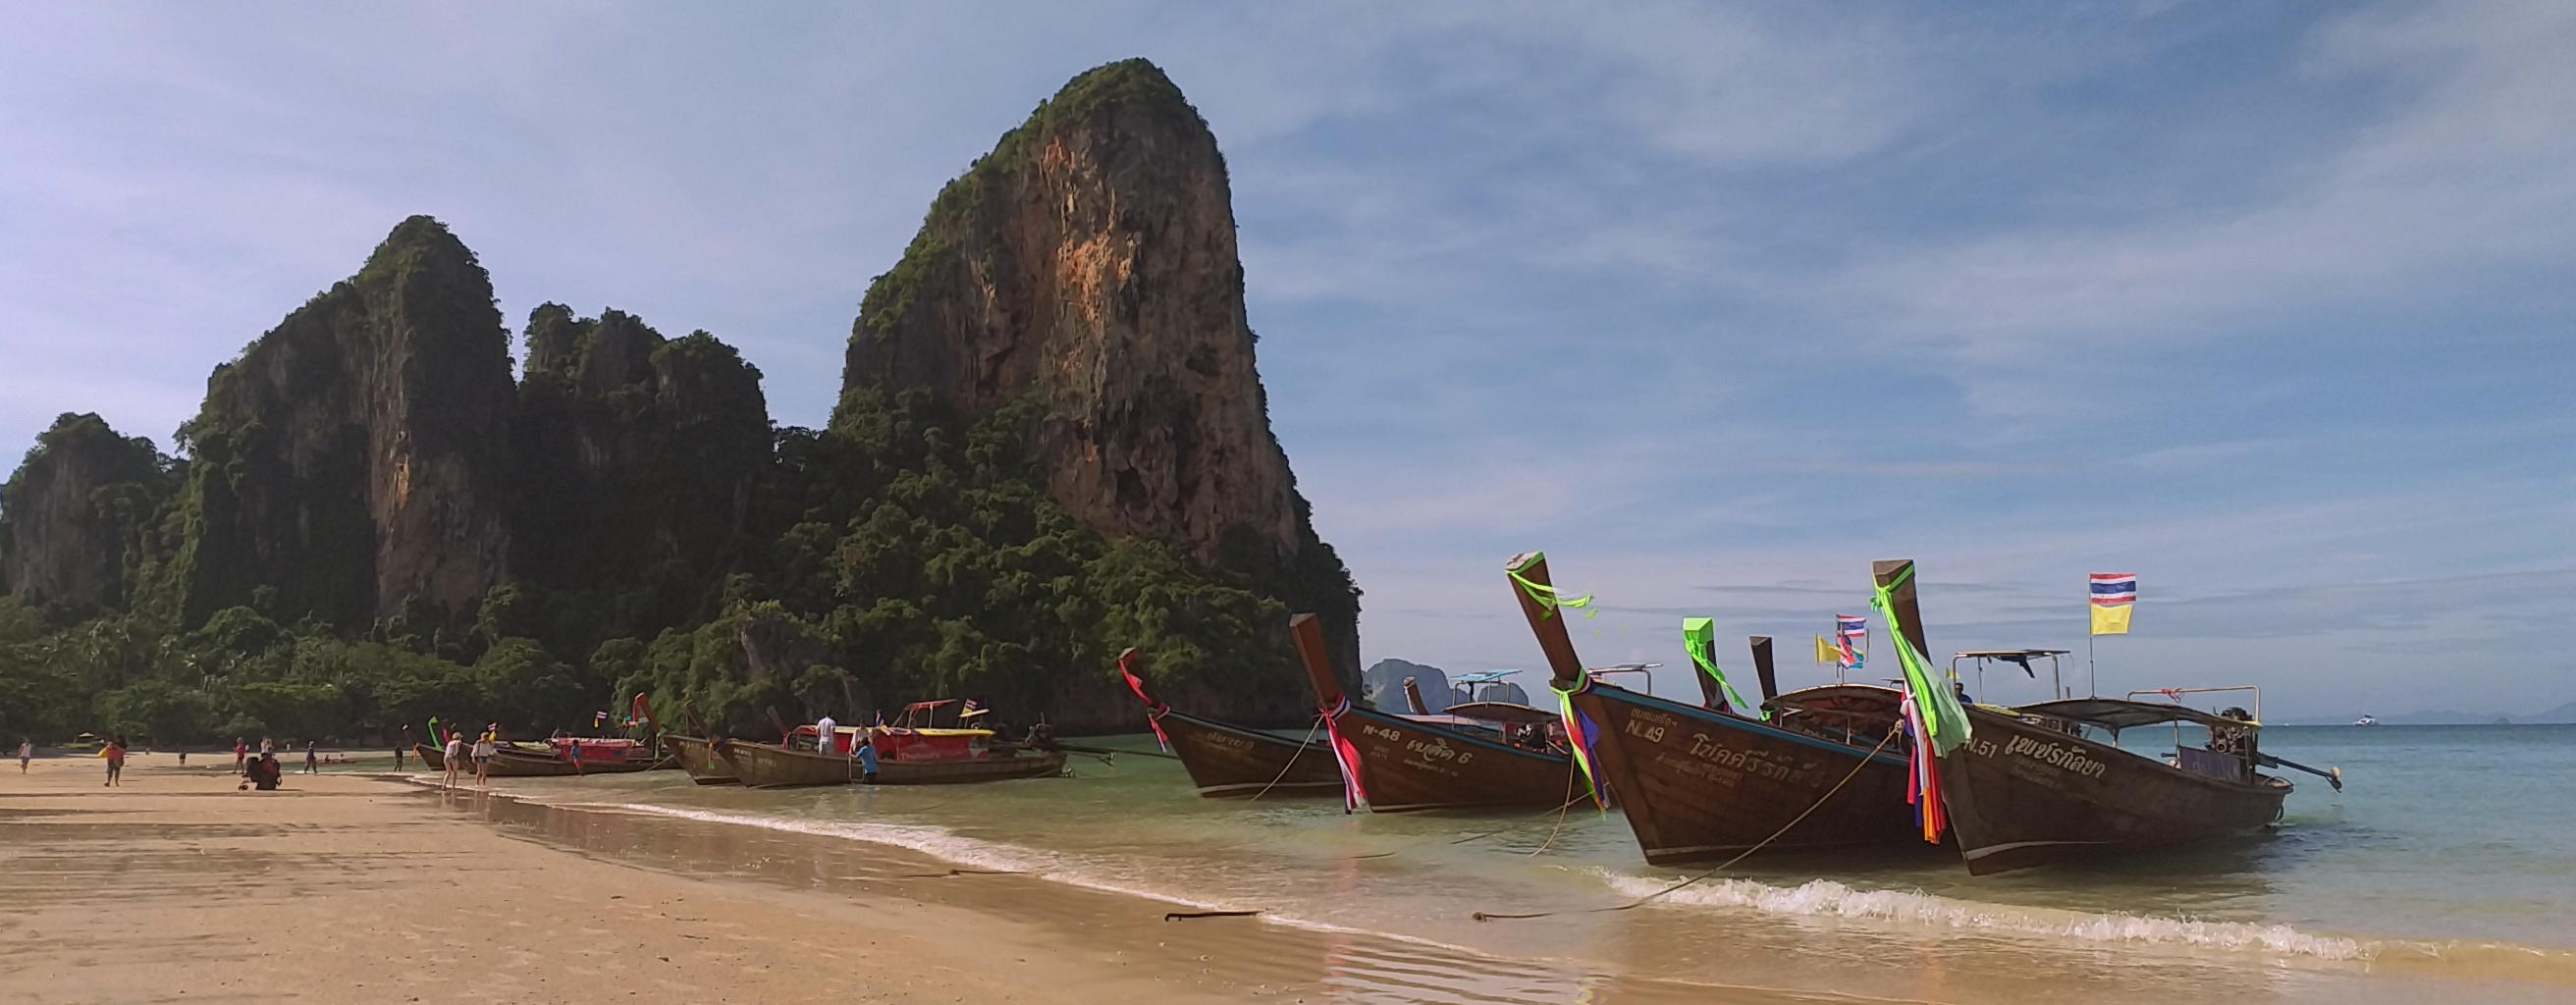 Longtail boat - Railay beach